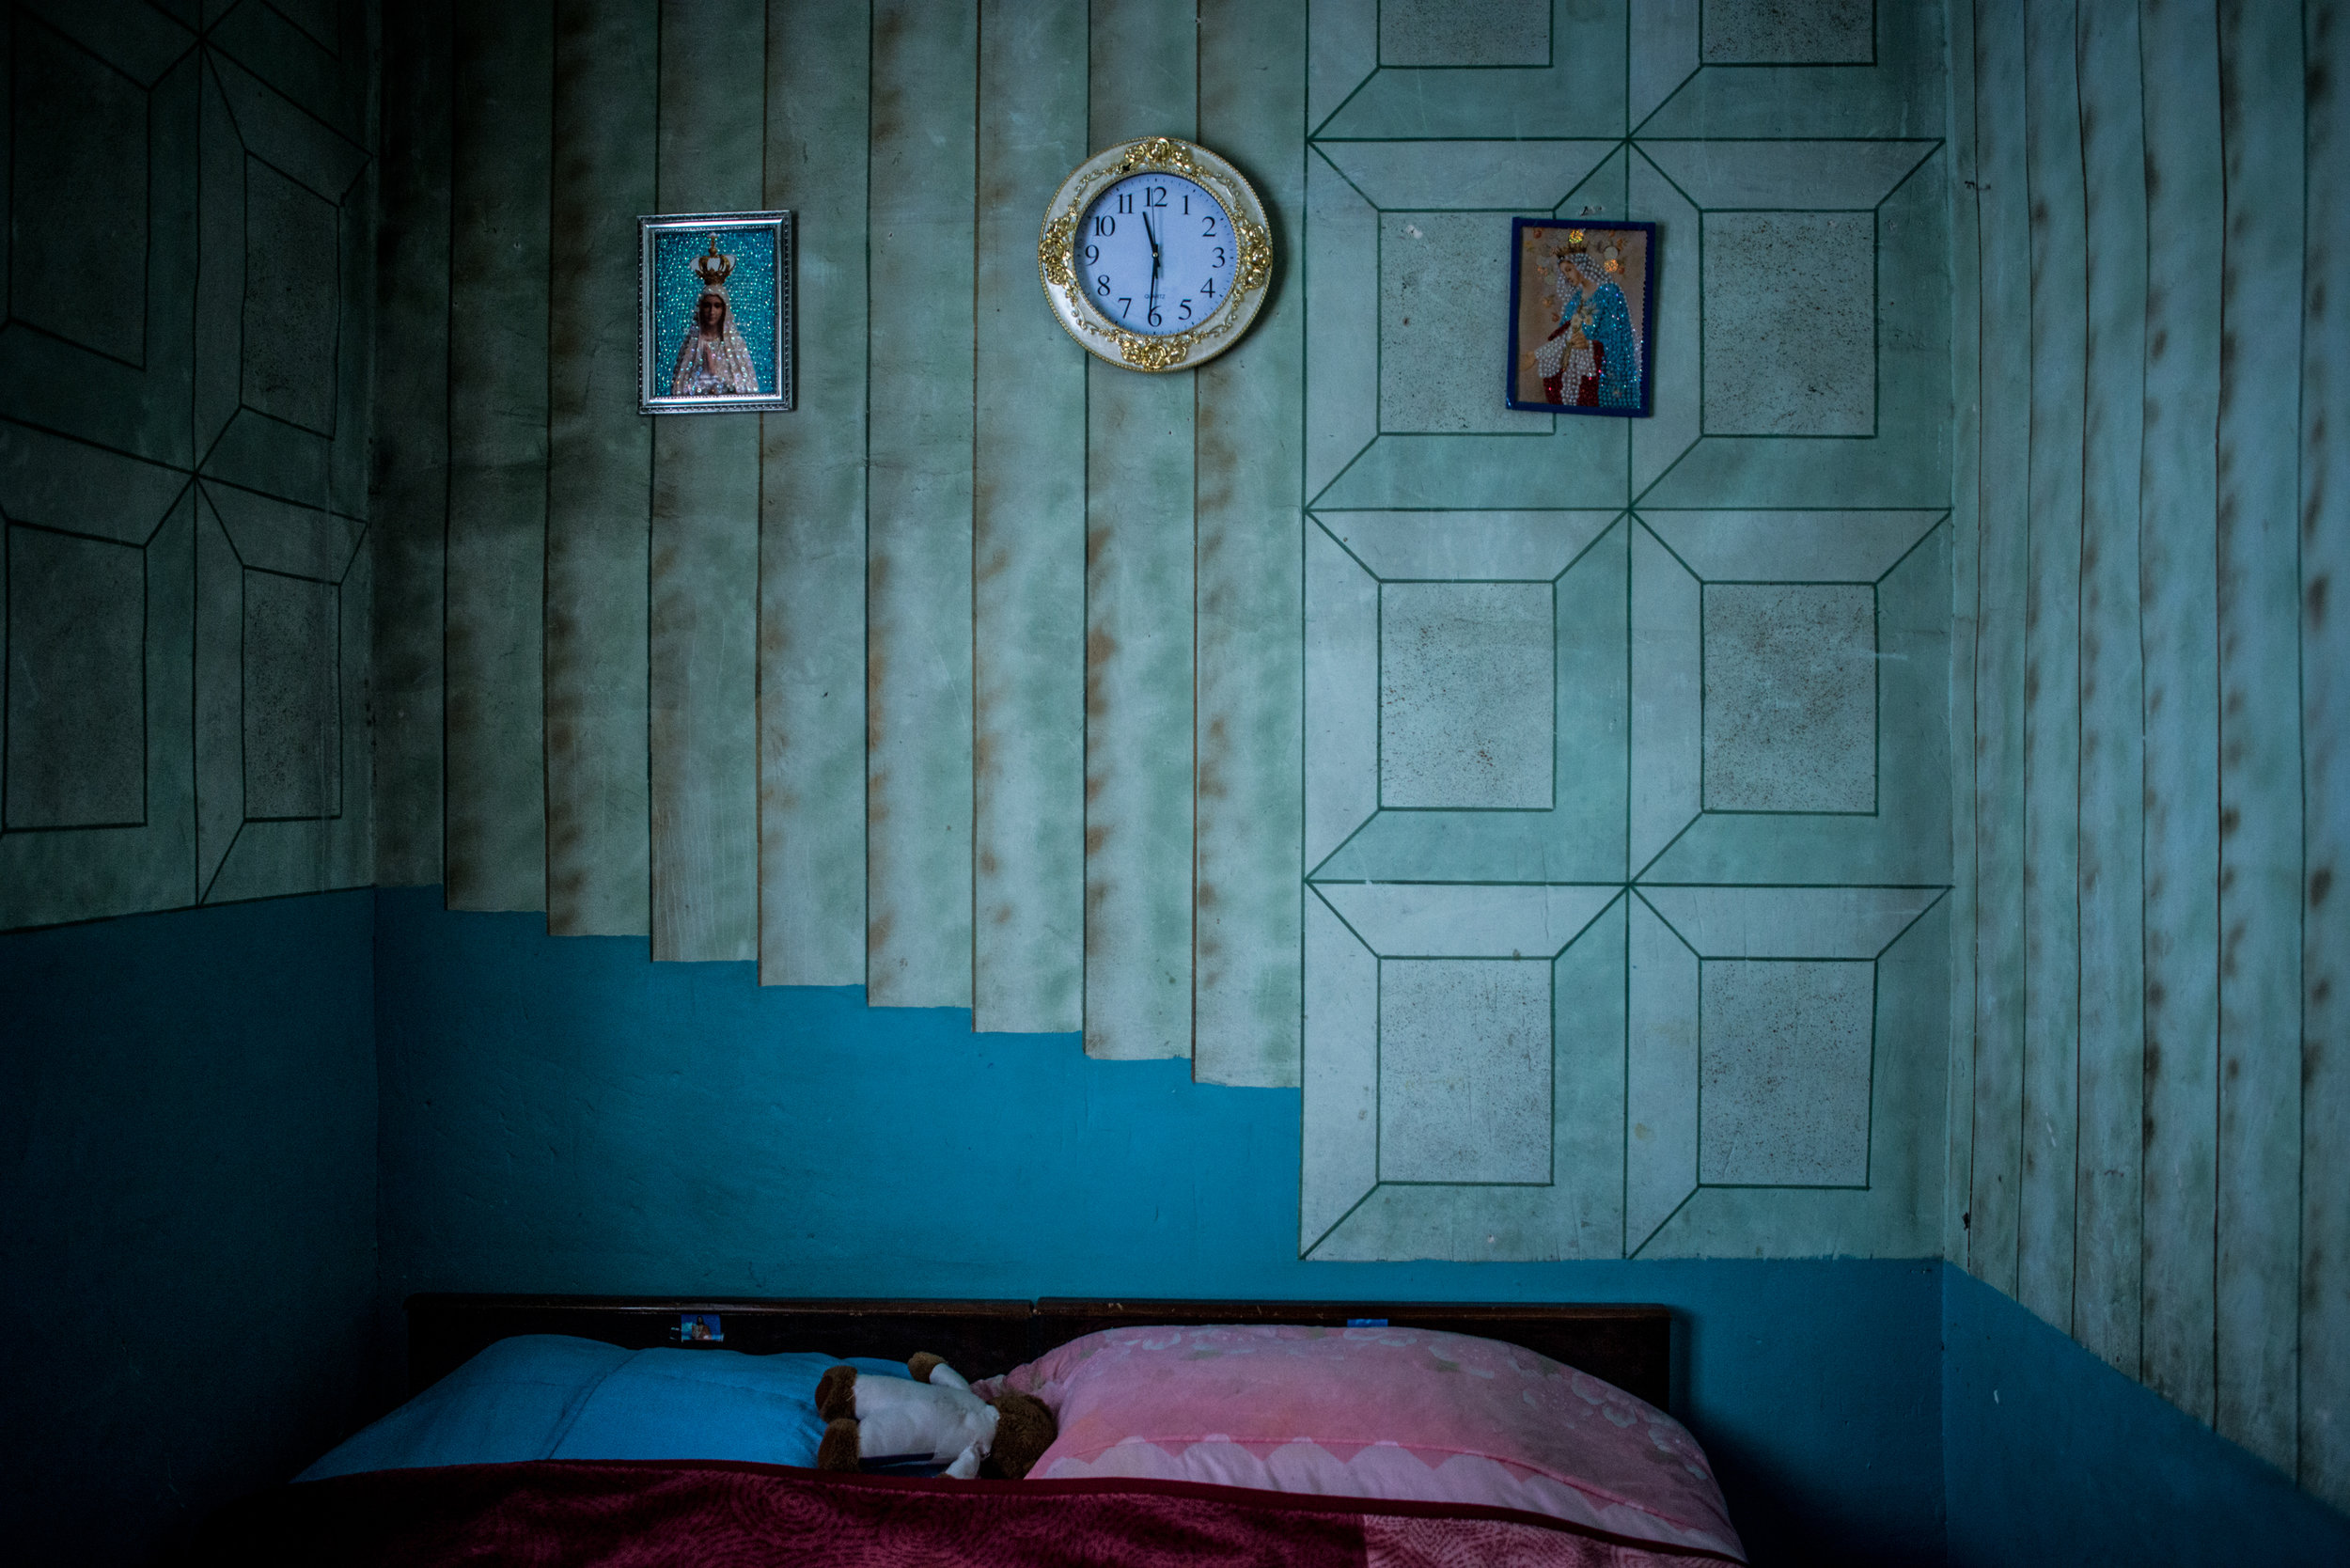 The bedroom of the family of Manush Moses, 41, and Soghomon Amseian, 48, who fled their home in Syria's eastern city of Deir Ezzor in 2013. The family moved to Qamishli for two years, and then moved to Armenia in 2015. Before the war disturbed their lives, Soghomon owned a photo studio in Deir Ezzor, which had been the family business for generations. Soghomon does not have a full time job, he works on demand assembling furniture. Manush works as a cook in a kindergarten where they also take their youngest son. The hardships are making the family rethink their stay in Armenia, and possibly move to Lebanon or any other country with better economy.